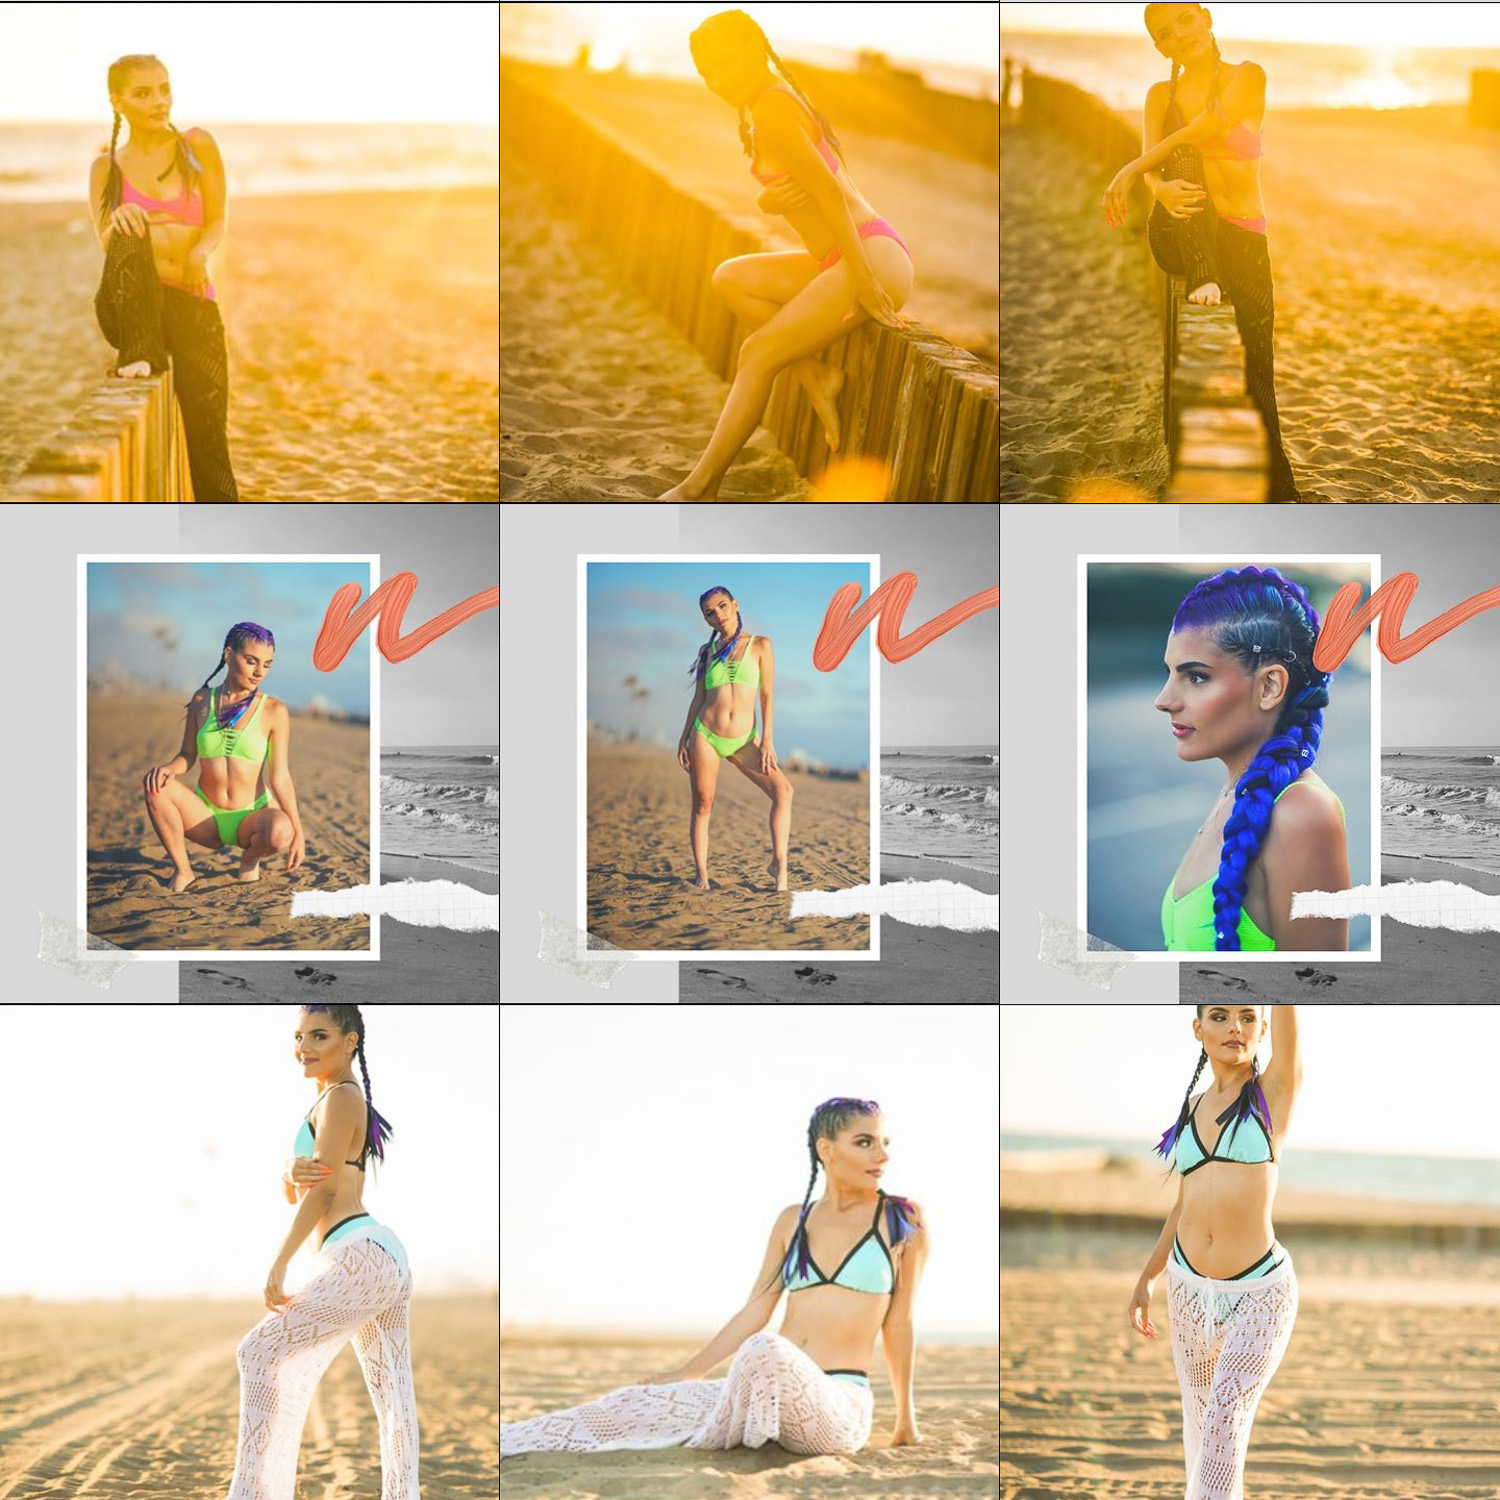 Image: This feed by singer Jessica Abari, shows unification in sets of 3 (with editing style and ima...